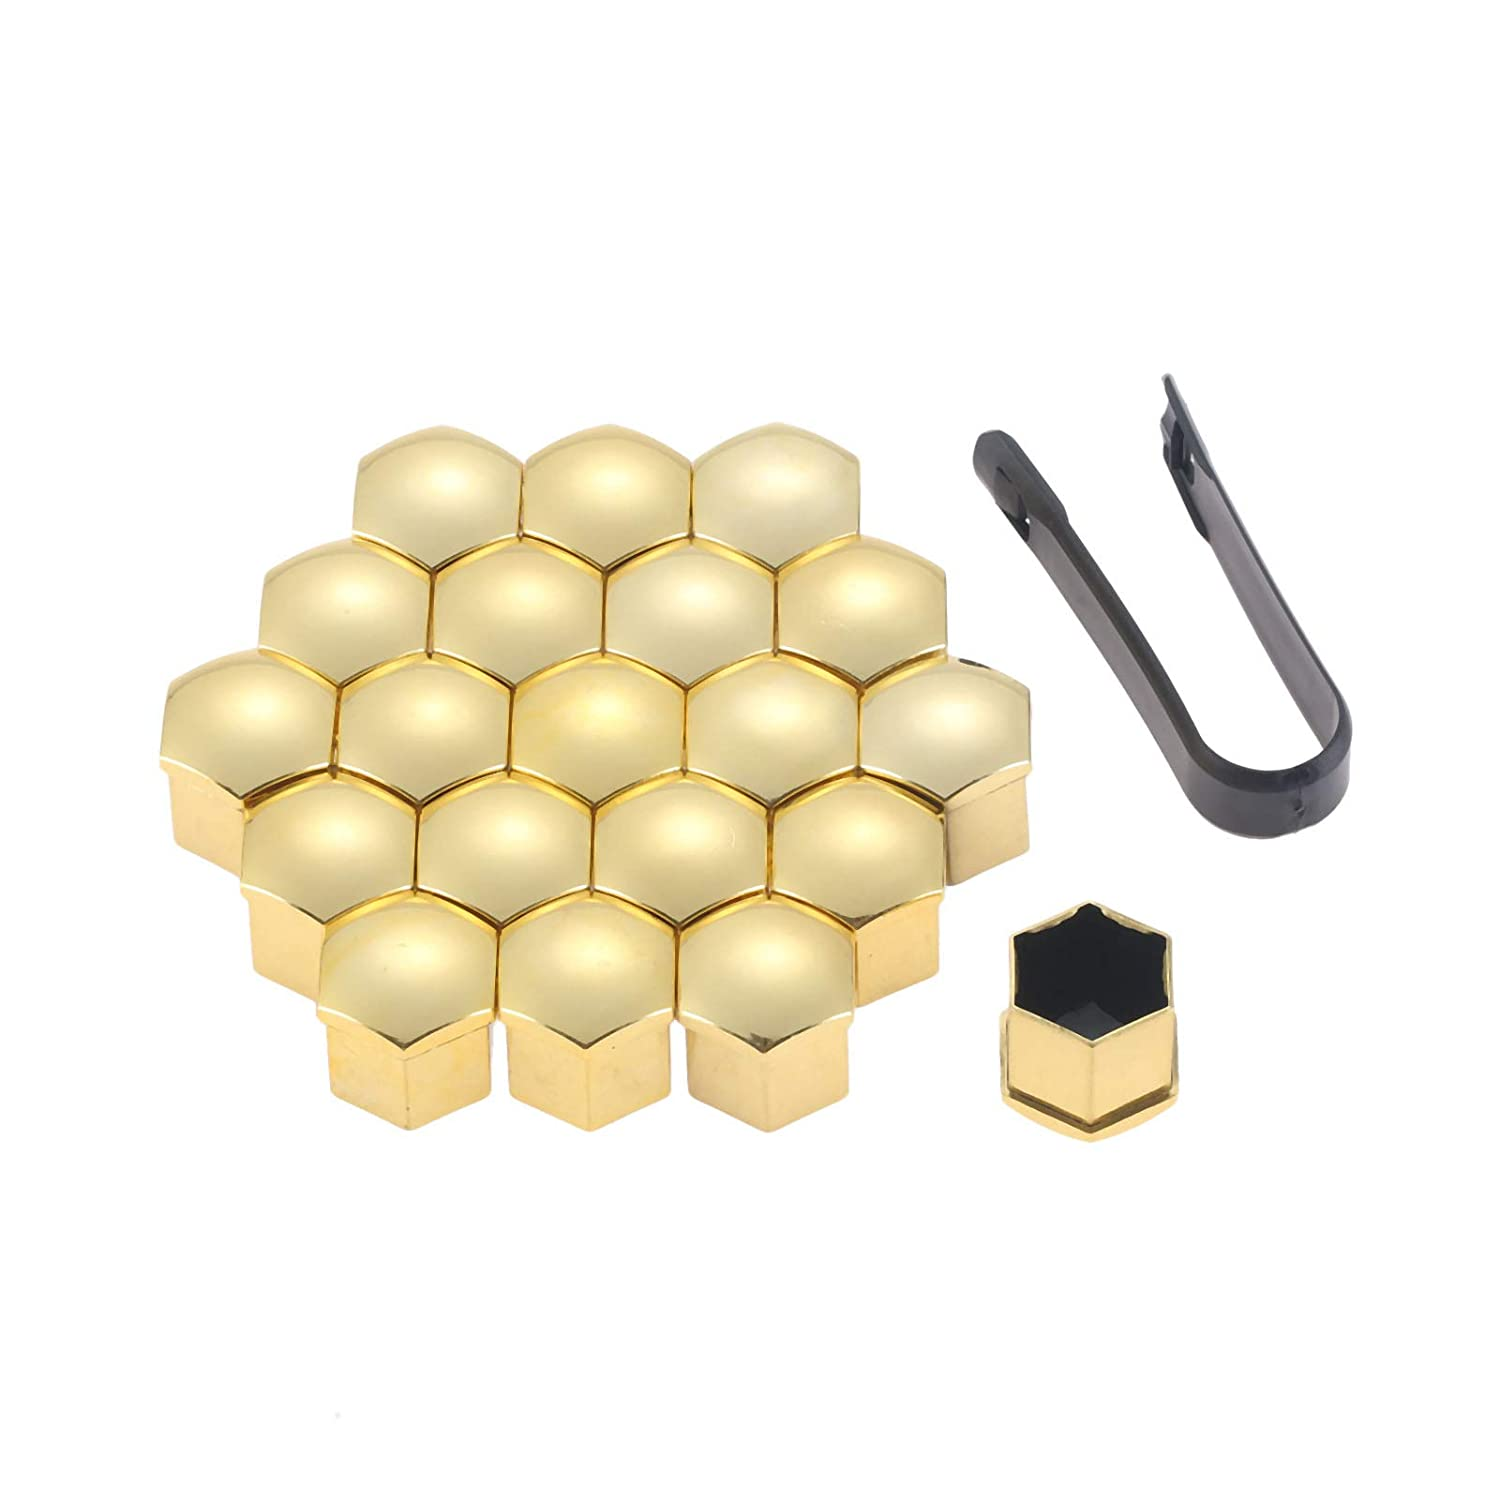 20Pcs Gold Universal Anti-Rust 21mm Chrome Glossy ABS Auto Trim Tyre Wheel Nut Screw Bolt Protection Covers Caps Car Styling Mtsooning